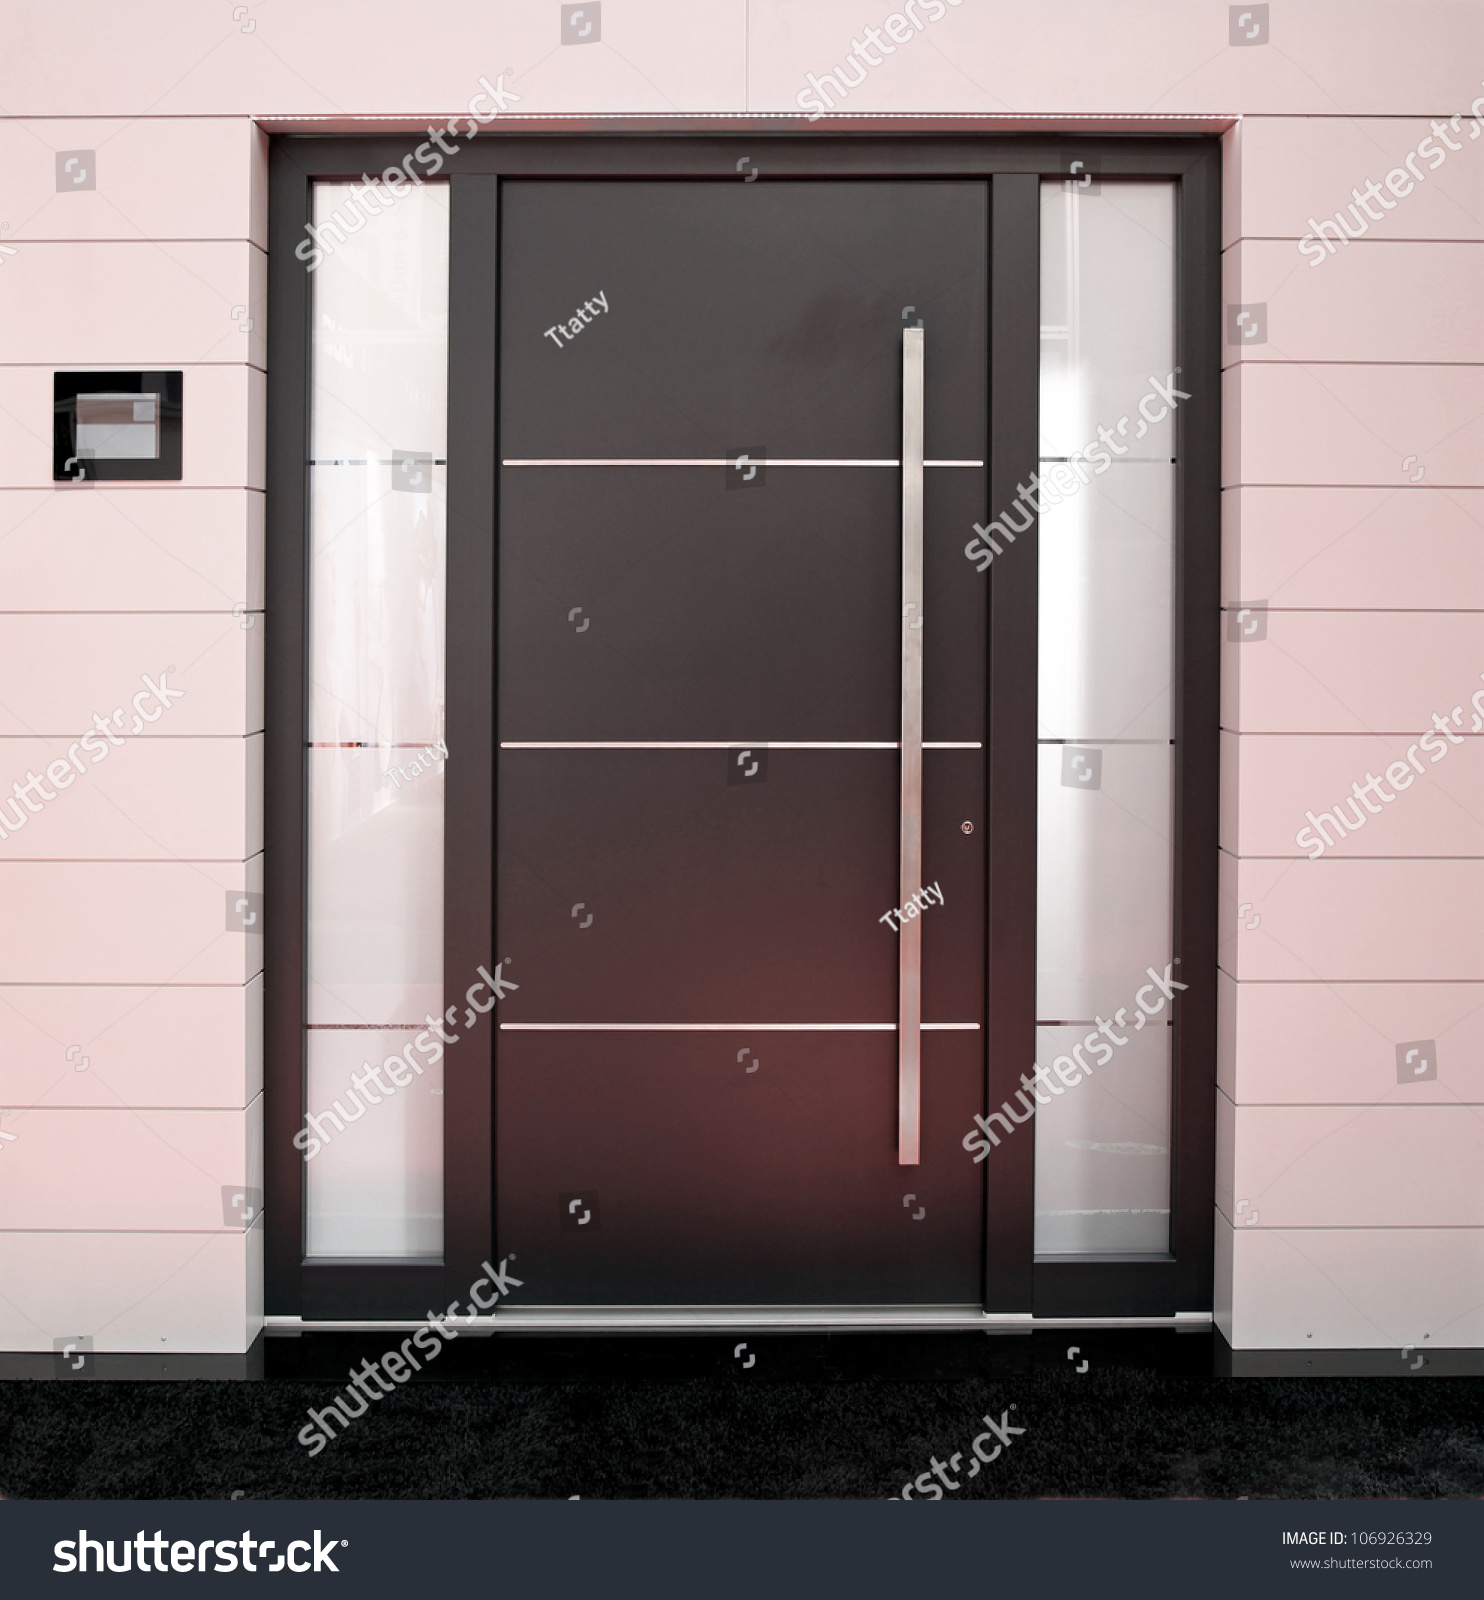 Big outside entrance door with silver details stockfoto for Big entrance door